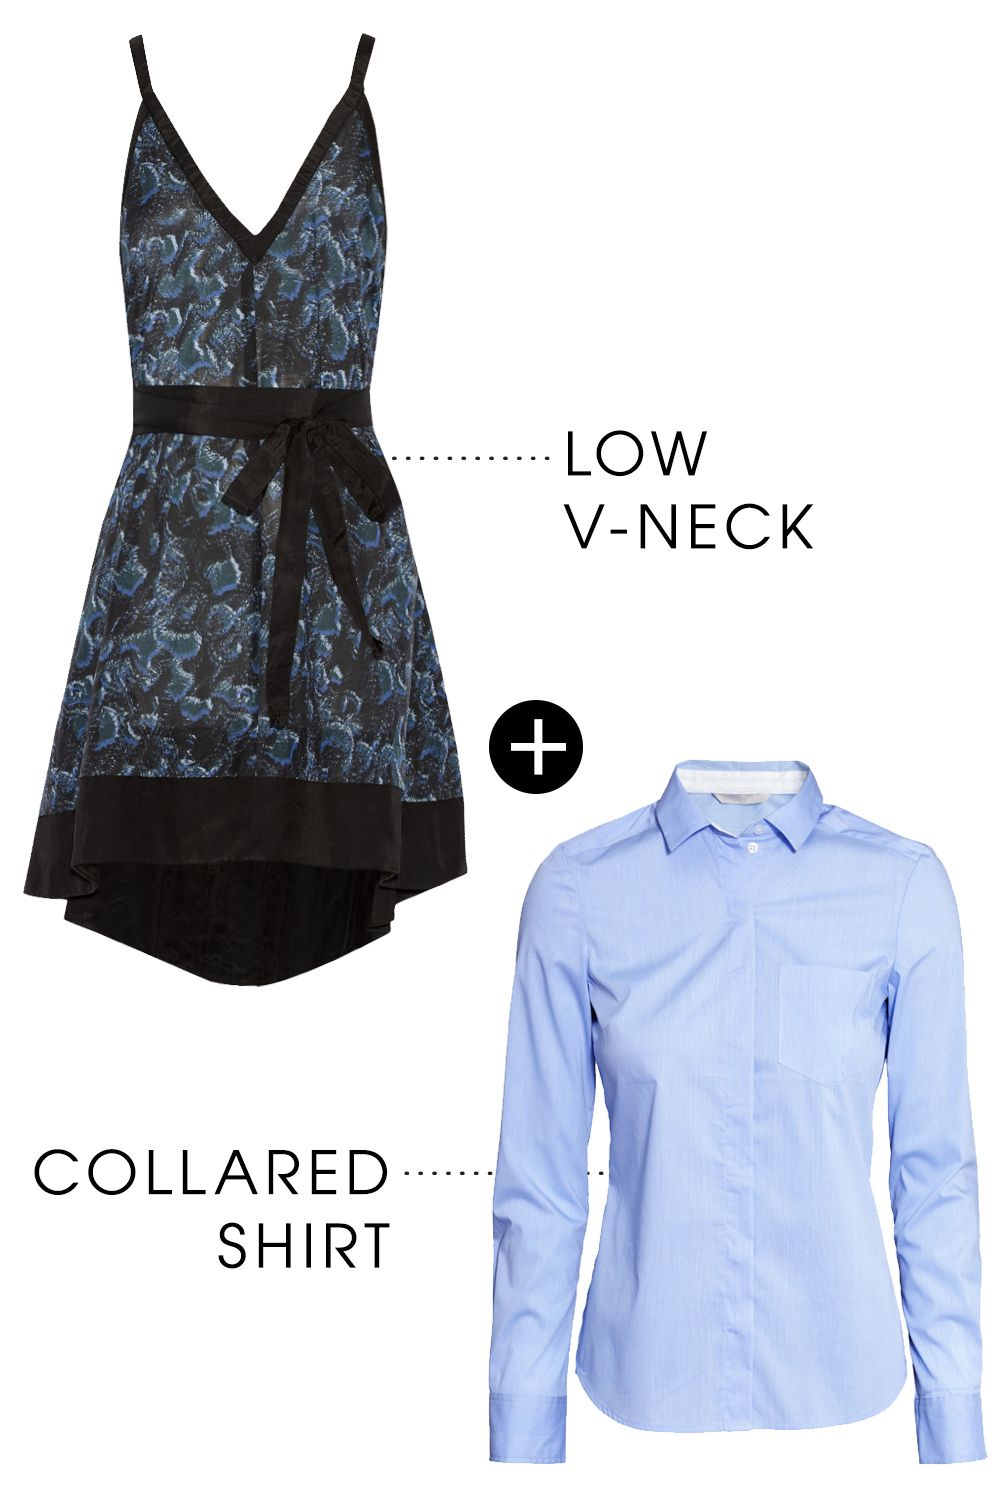 """<p>You may not automatically think to layer a collared shirt under a v-neck dress, but the result is always a high-fashion hit. Choose a fitted shirt and button it all the way up to the top for the coolest effect.</p><p>Proenza Schouler Printed Cotton and Silk-Blend Mini Dress, $690; <a href=""""http://rstyle.me/n/bdbfmwbc6jf"""">net-a-porter.com</a></p><p>H&M Stretch Shirt, $20; <a href=""""http://rstyle.me/n/bd3adwbc6jf"""">hm.com</a></p><p><br></p>"""